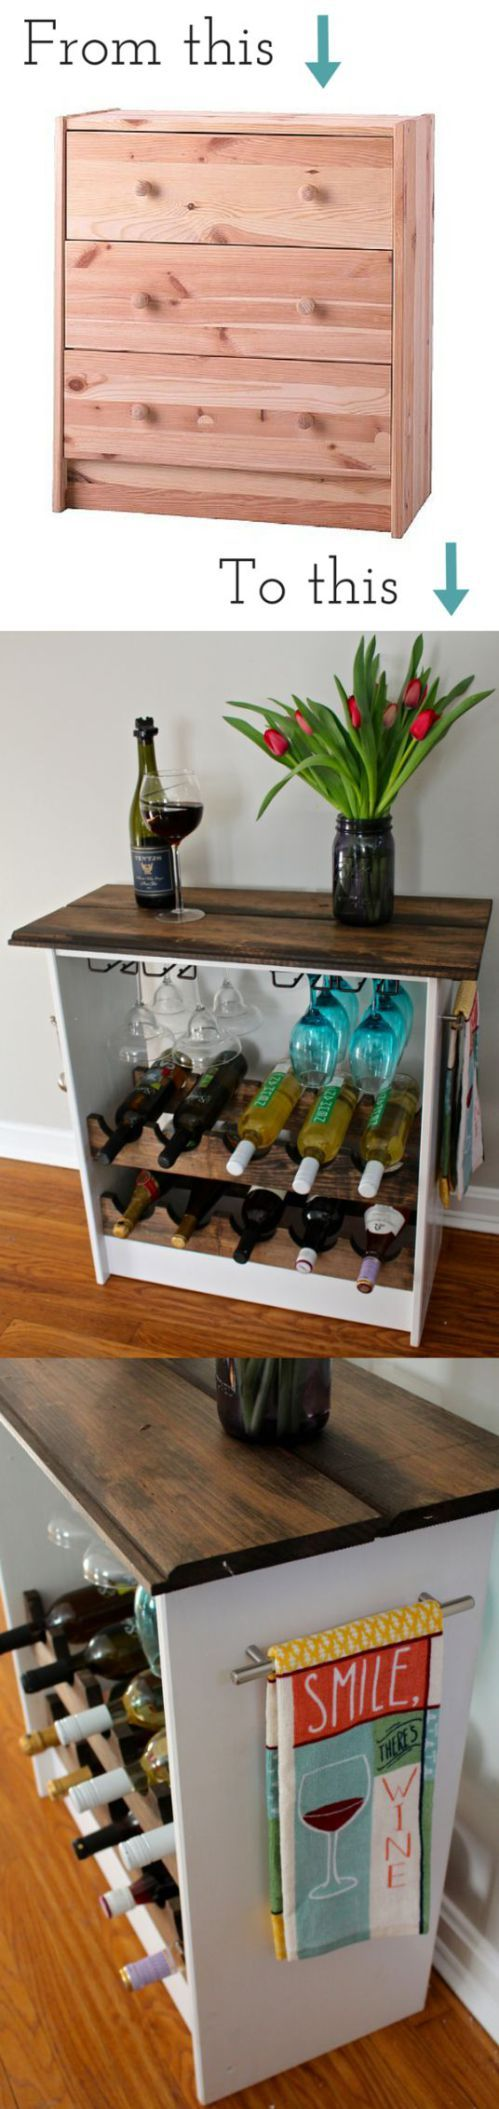 Ikea Hacks Furniture Diys That Ll Save You So Much Money Diy